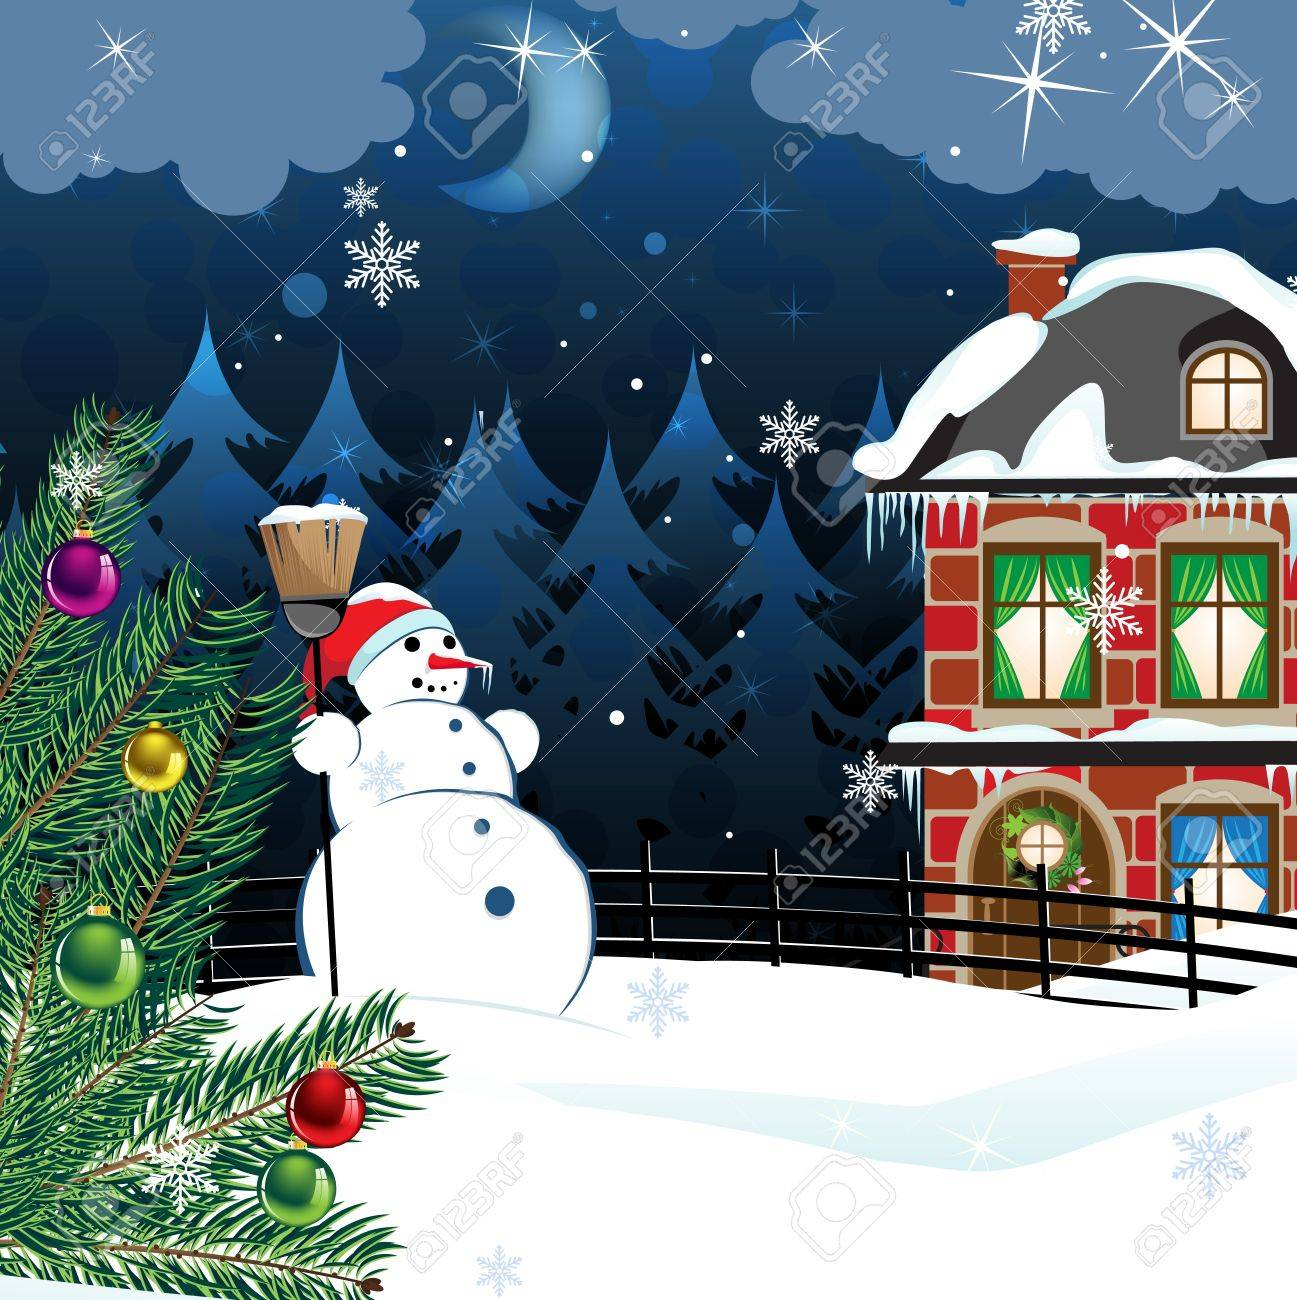 snowman with a broom and a Christmas tree in the yard of a snowcovered two-story brick house. Winter country landscape - 16480488